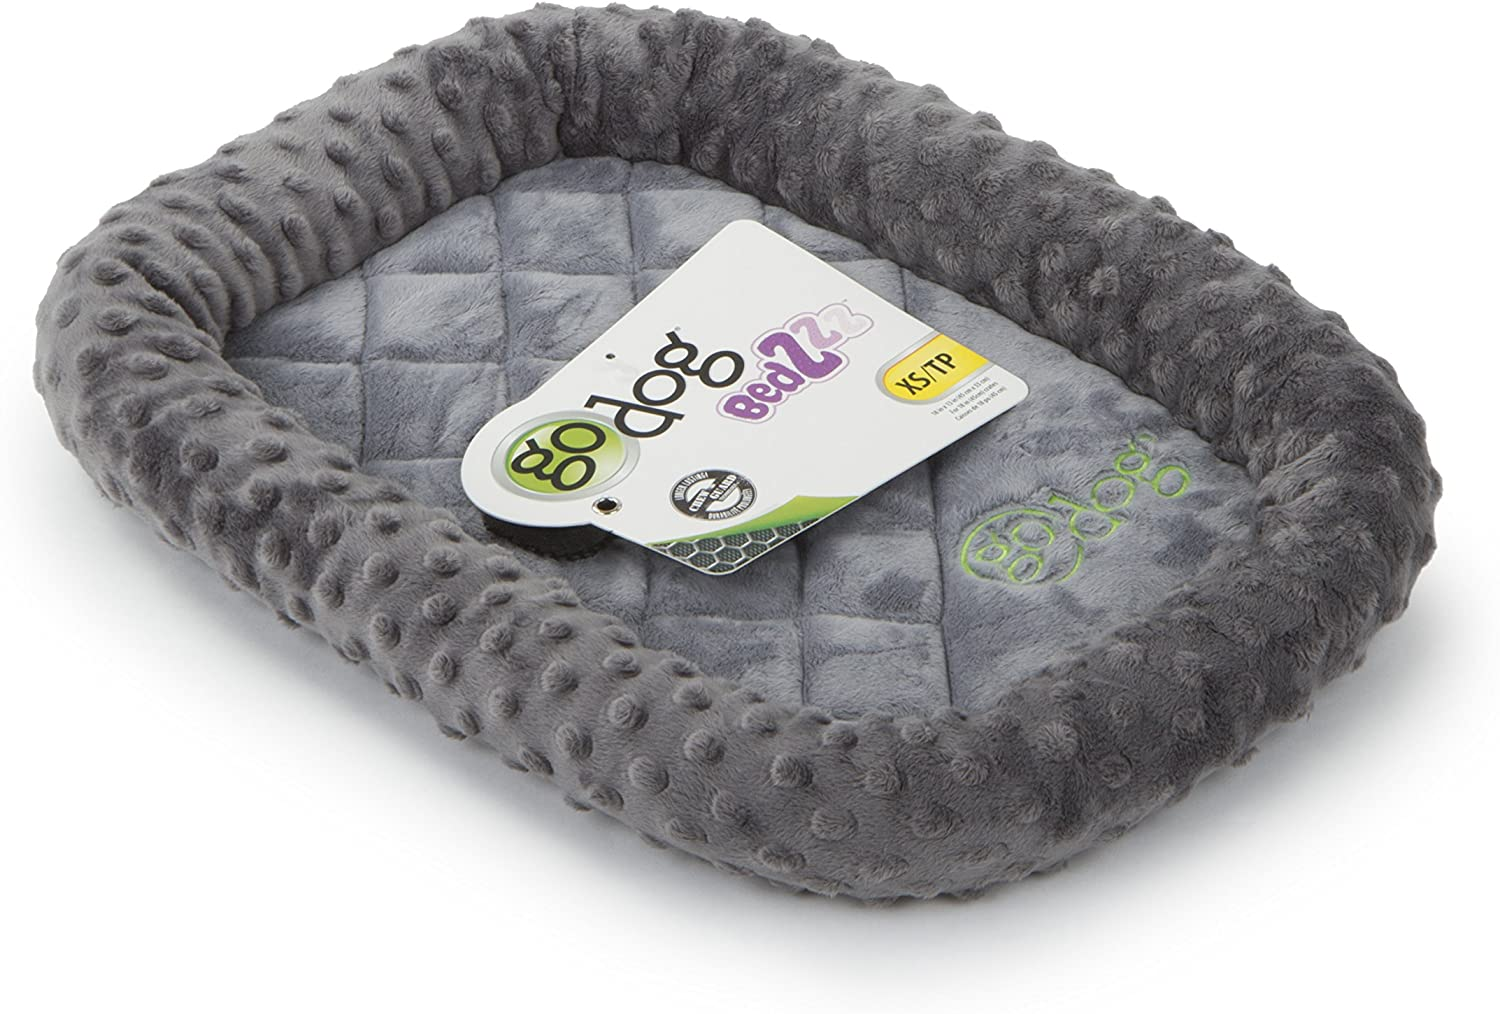 GoDogBedZzz Bubble Bolstered Dog Crate Mat